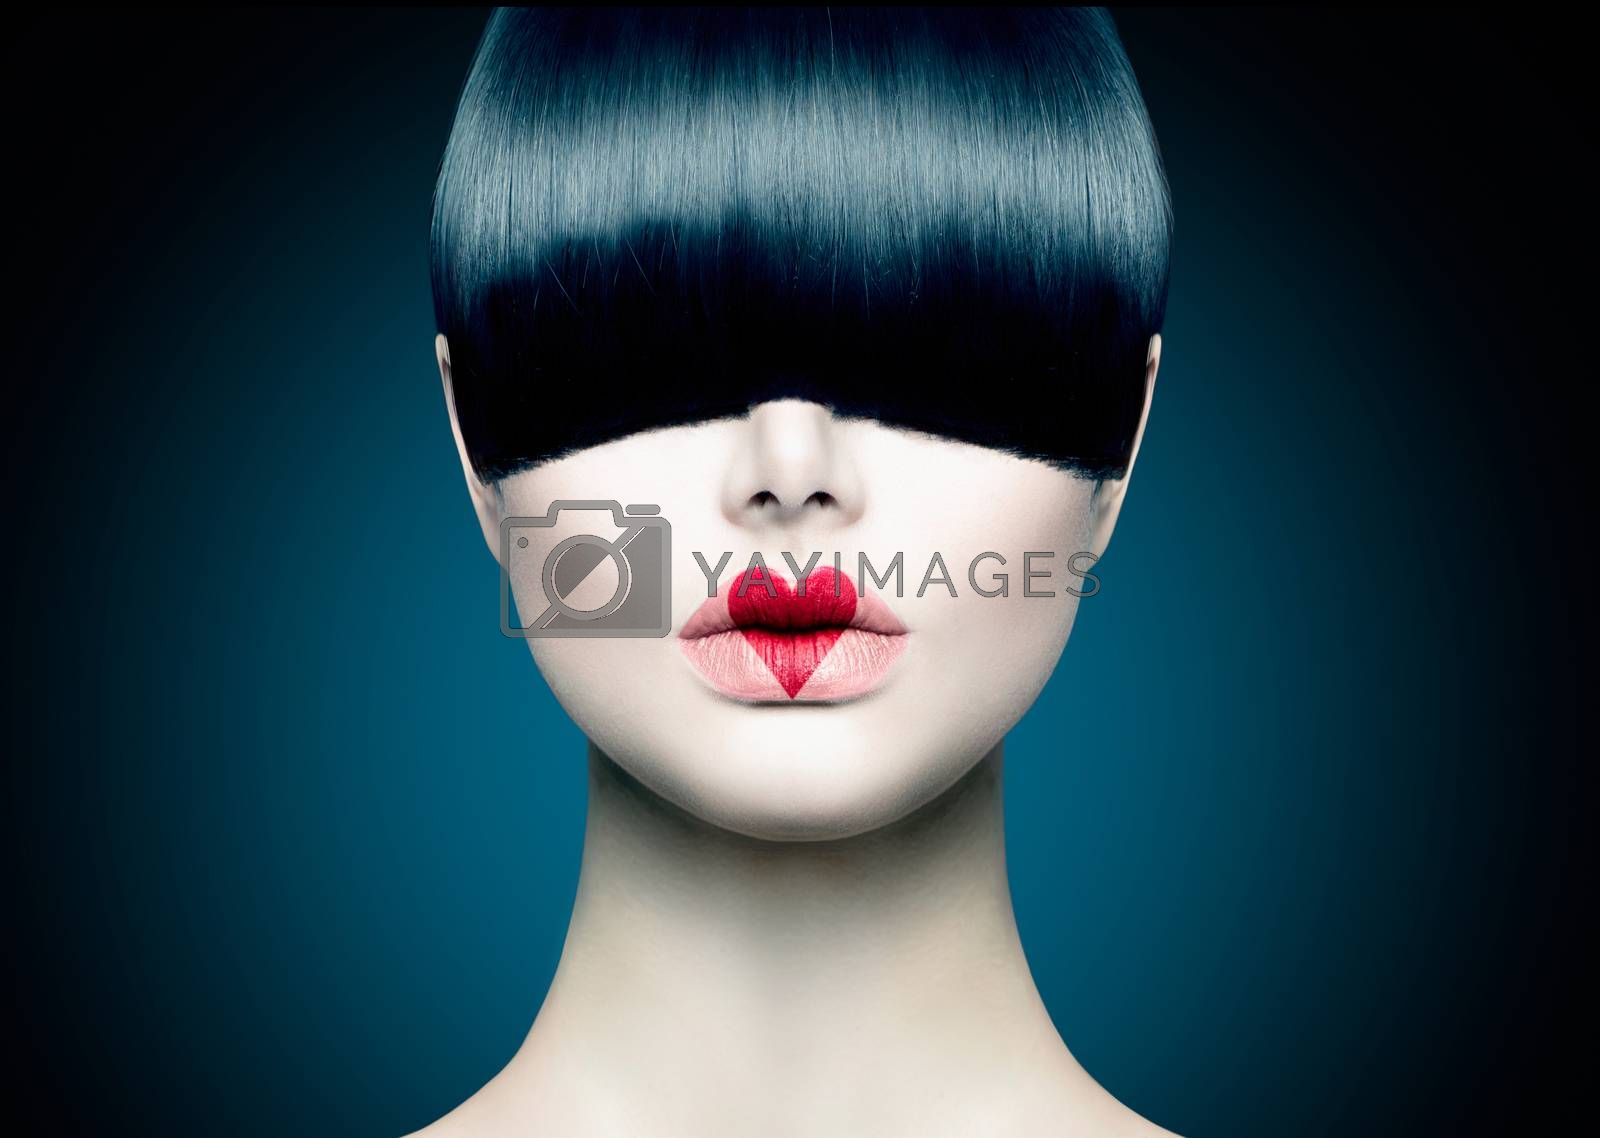 High Fashion Model Girl Portrait with Trendy Fringe by SubbotinaA